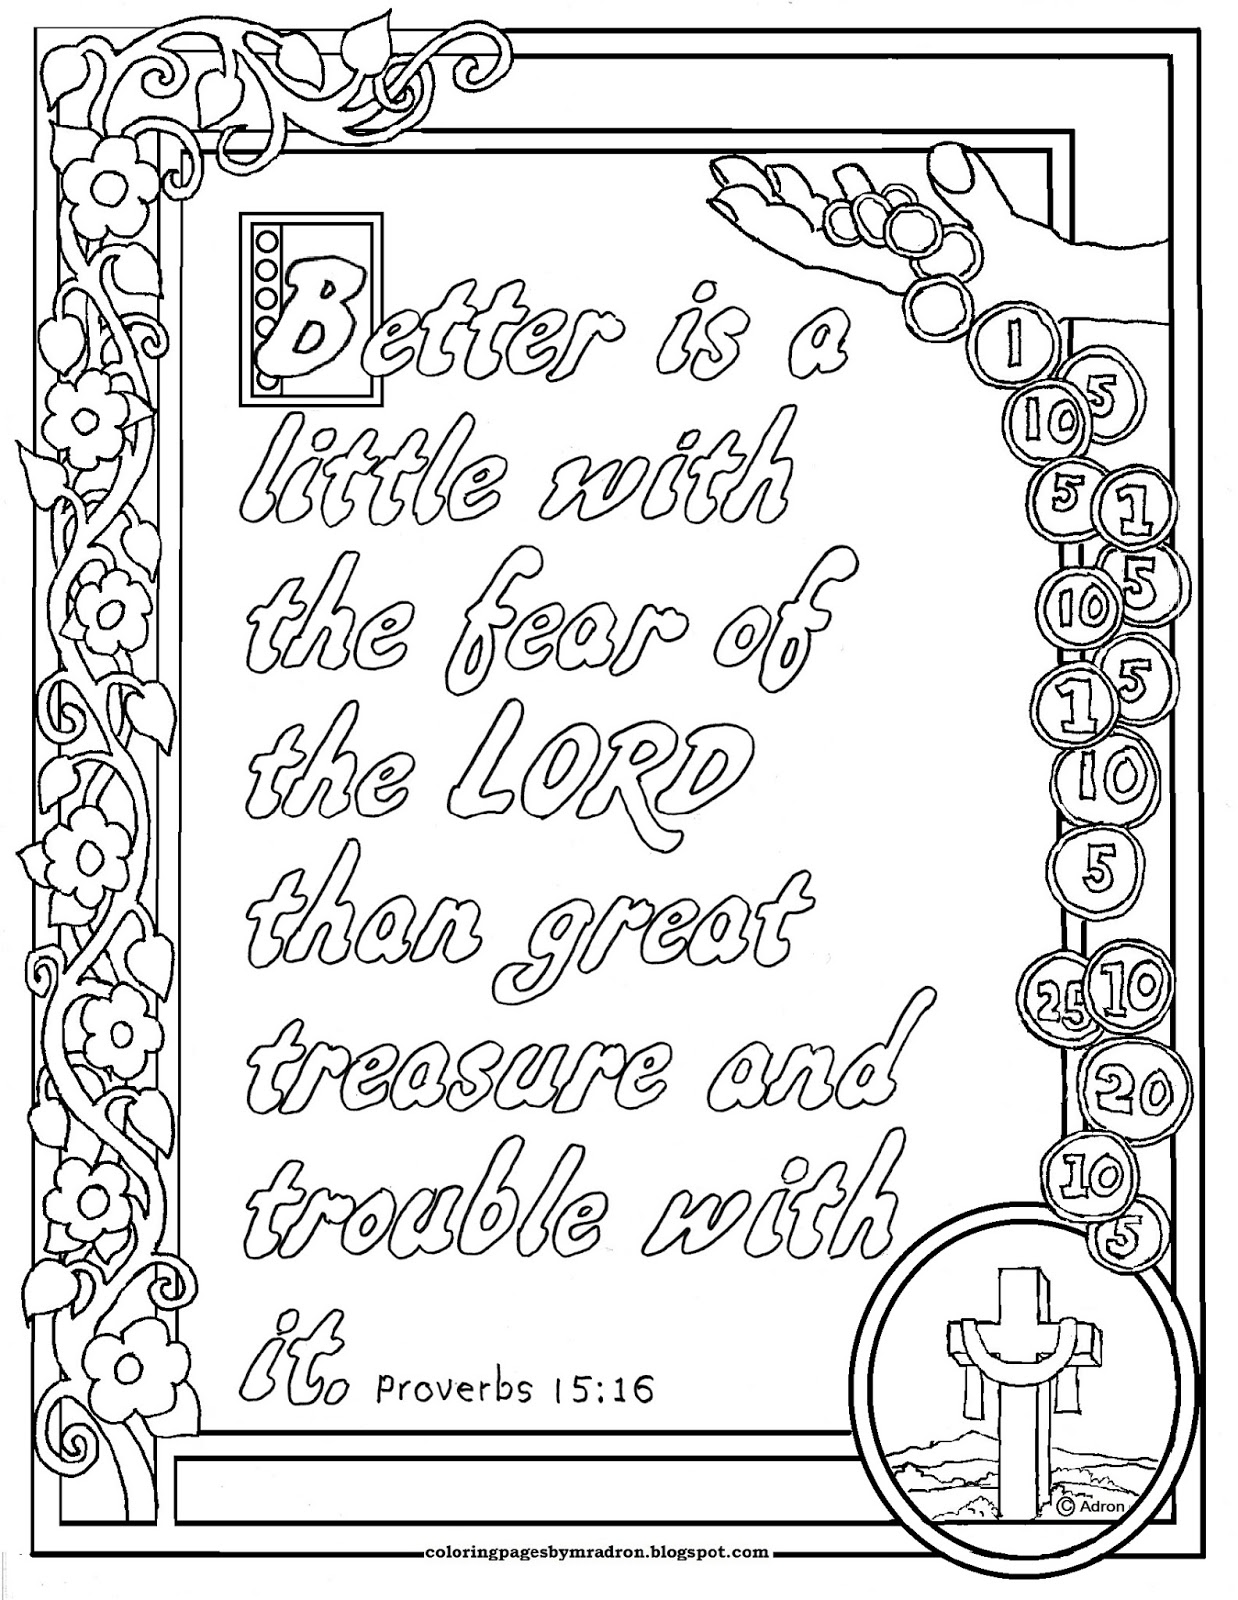 Coloring Pages for Kids by Mr. Adron: Proverbs 15:16 Print